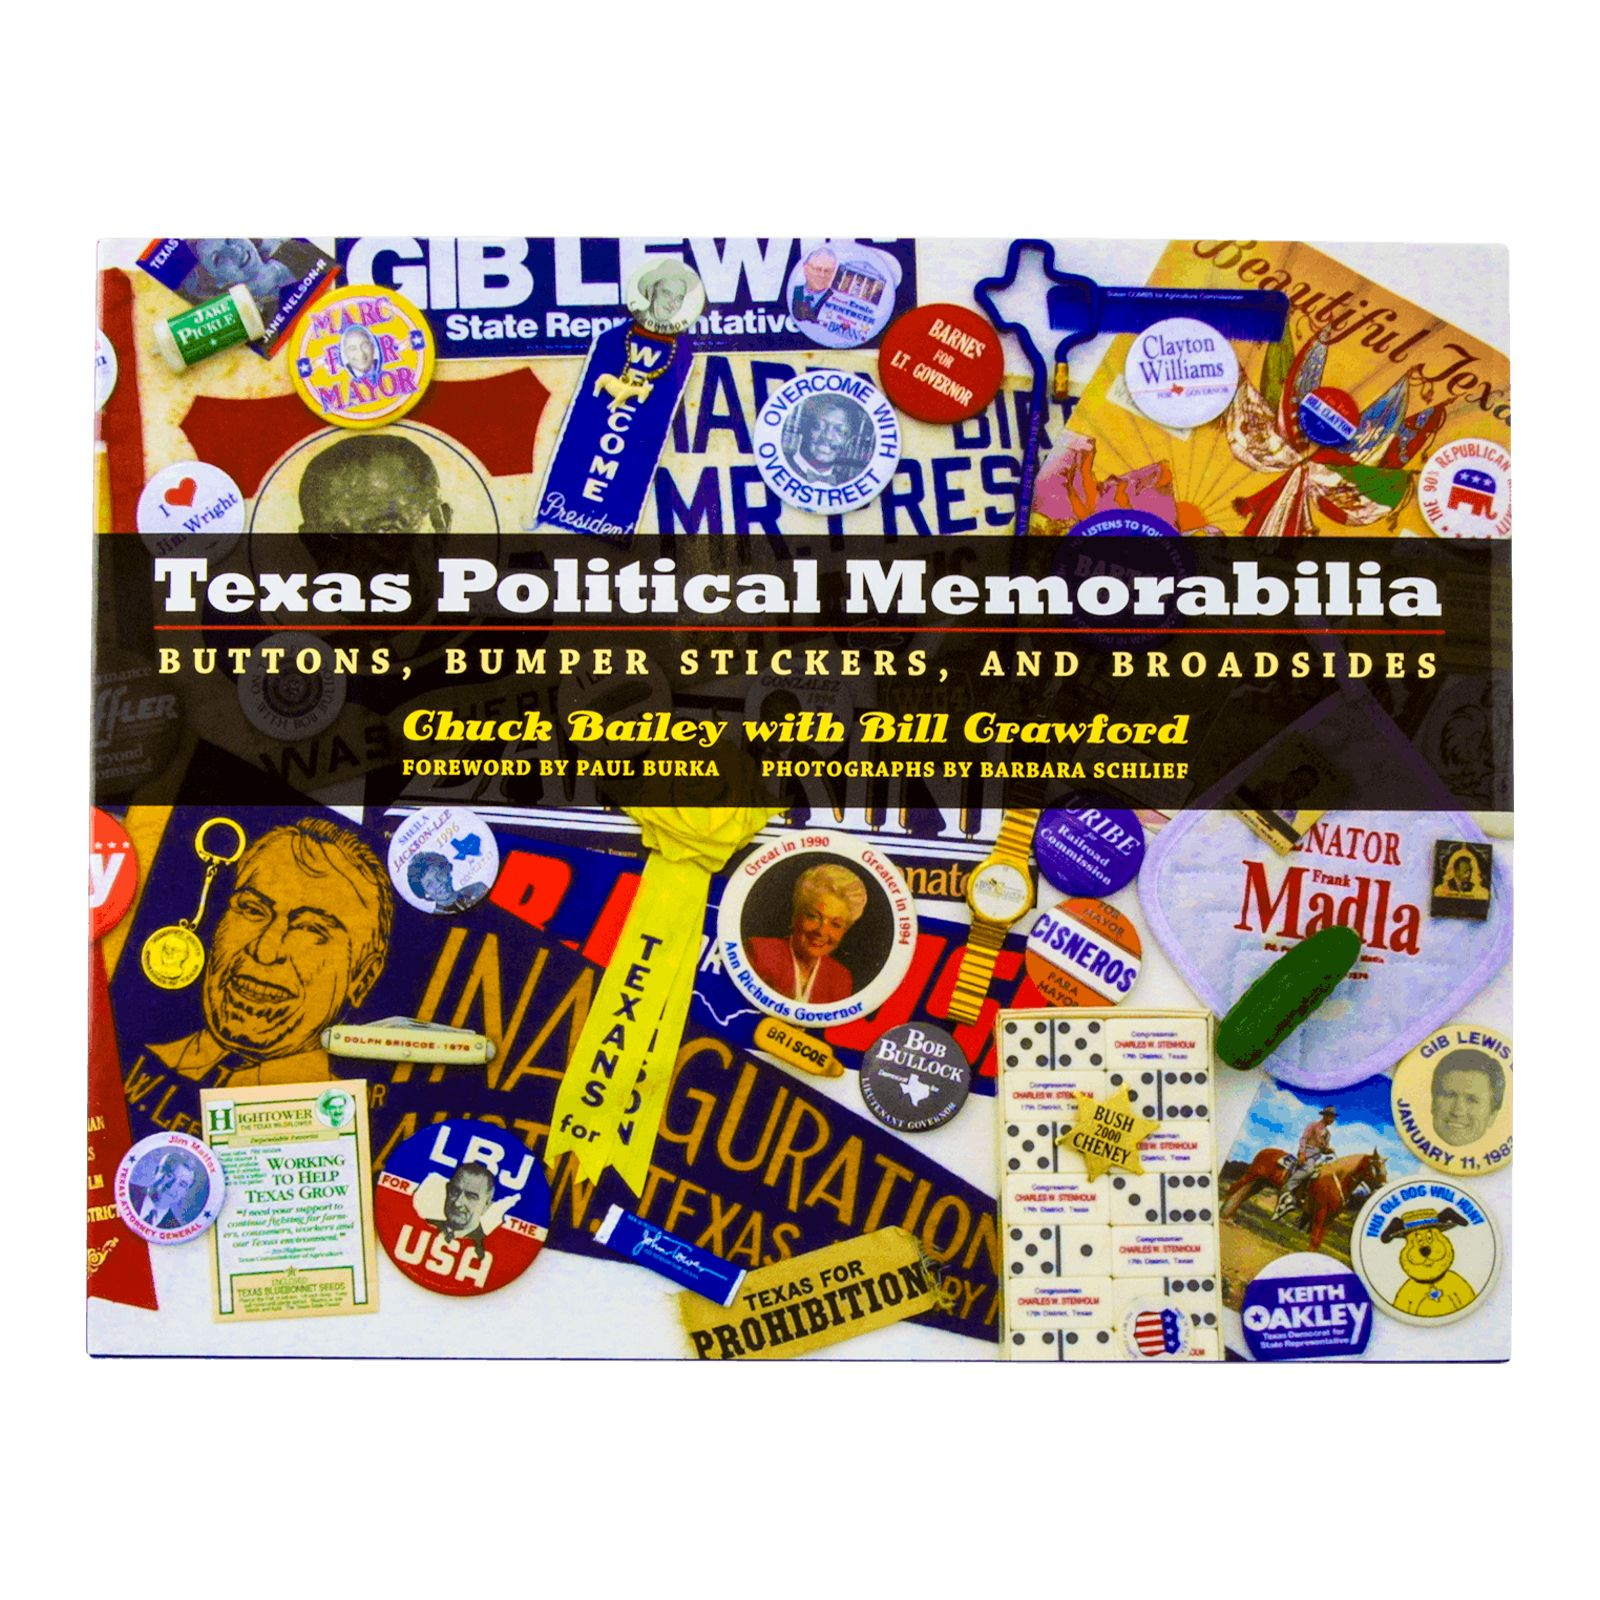 Texas Political Memorabilia: Buttons, Bumper Stickers, and Broadsides